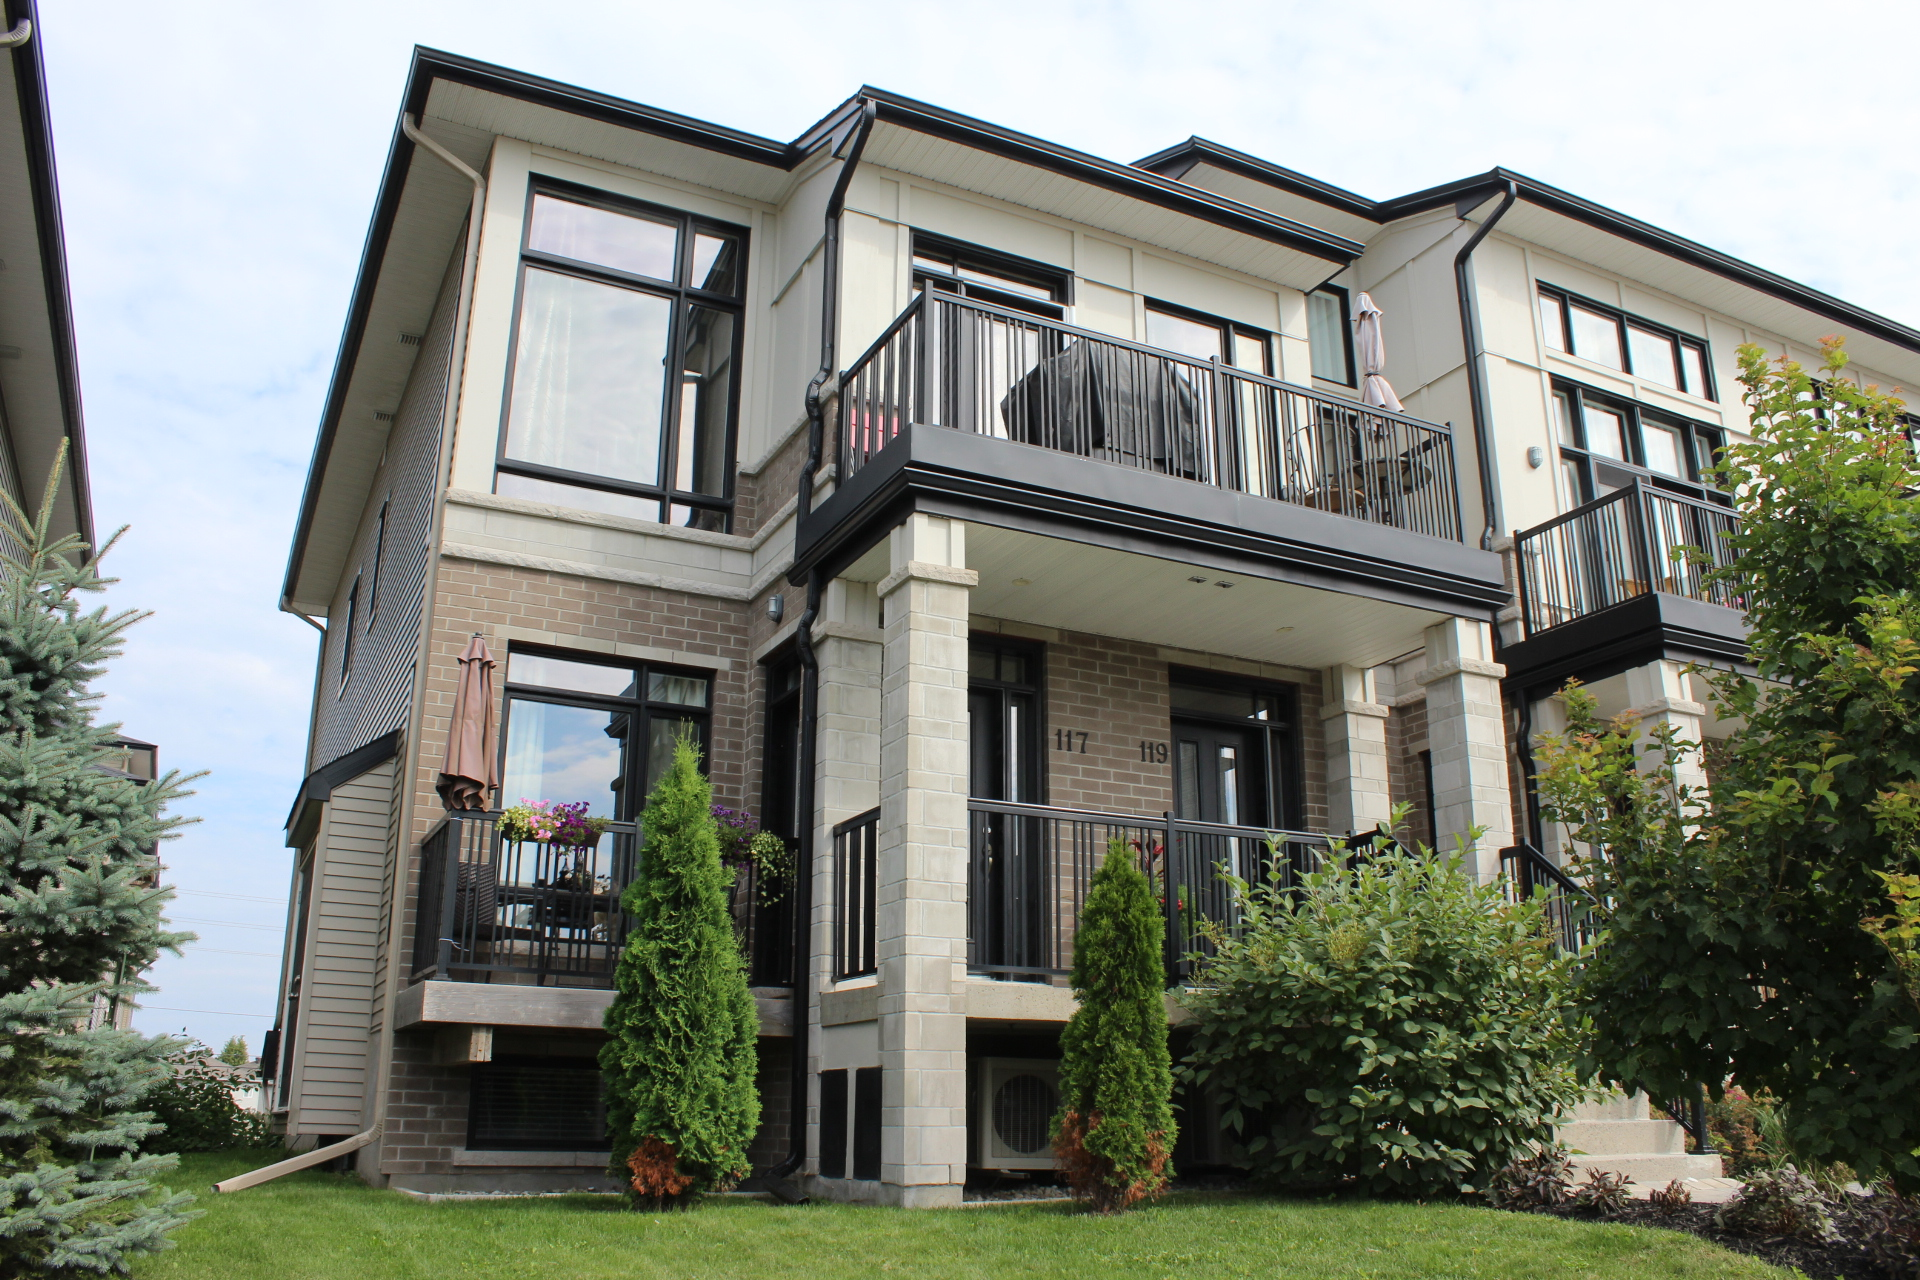 117 Poplin St - End Unit Open Concept Condo in Riverside South!